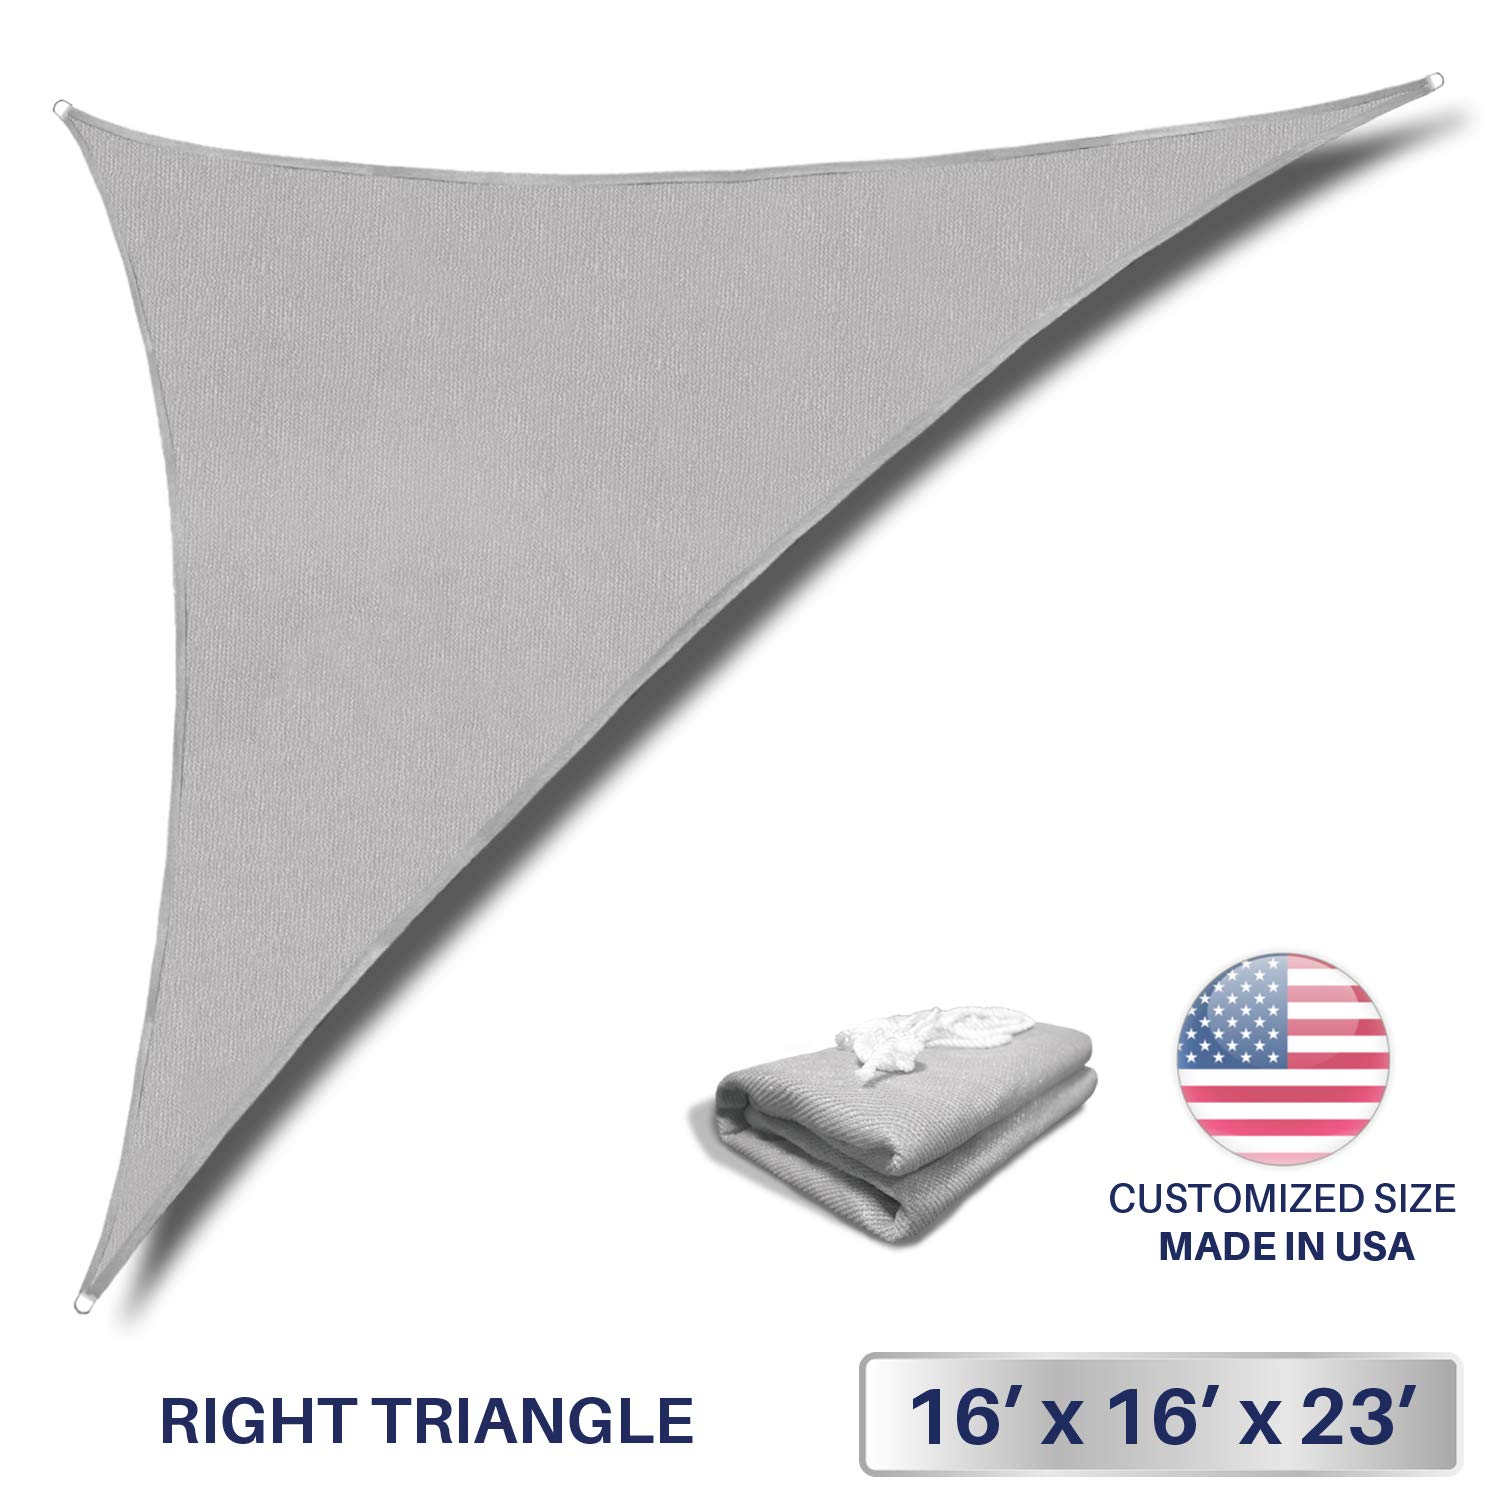 Windscreen4less 16' x 16' x 22.6' Triangle Sun Shade Sail - Solid Light Grey Durable UV Shelter Canopy for Patio Outdoor Backyard - Custom (3 Year Warranty)